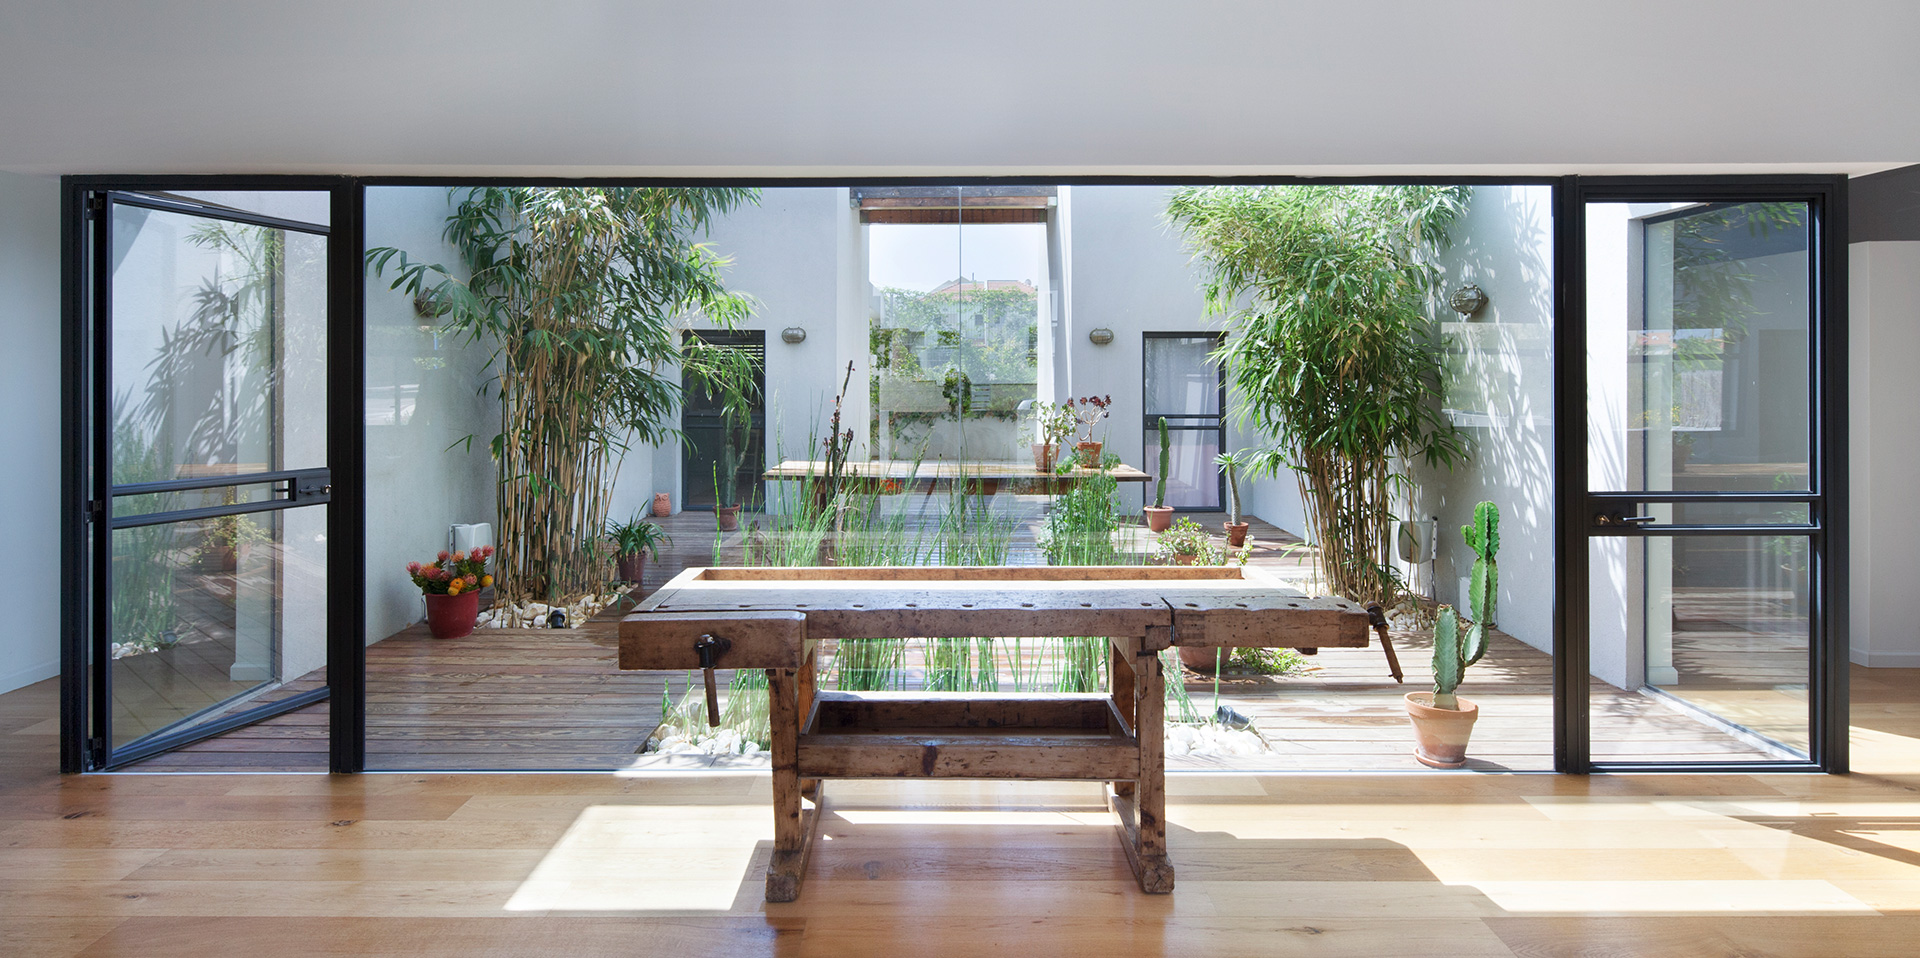 The patio house